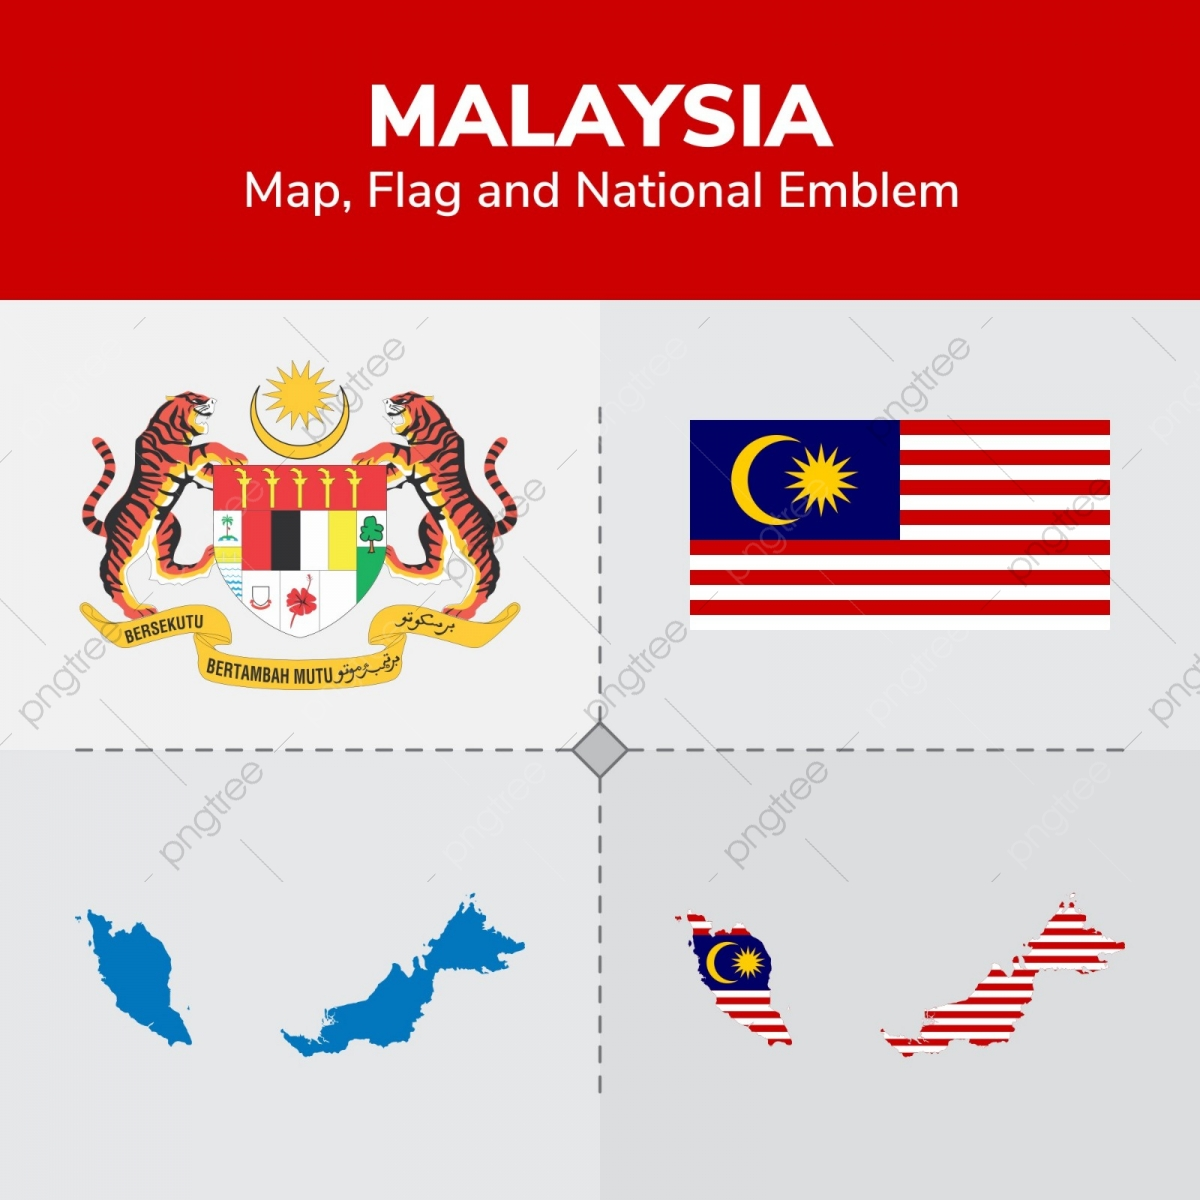 Malaysia Map, Flag And National Emblem, Continents, Countries, Map